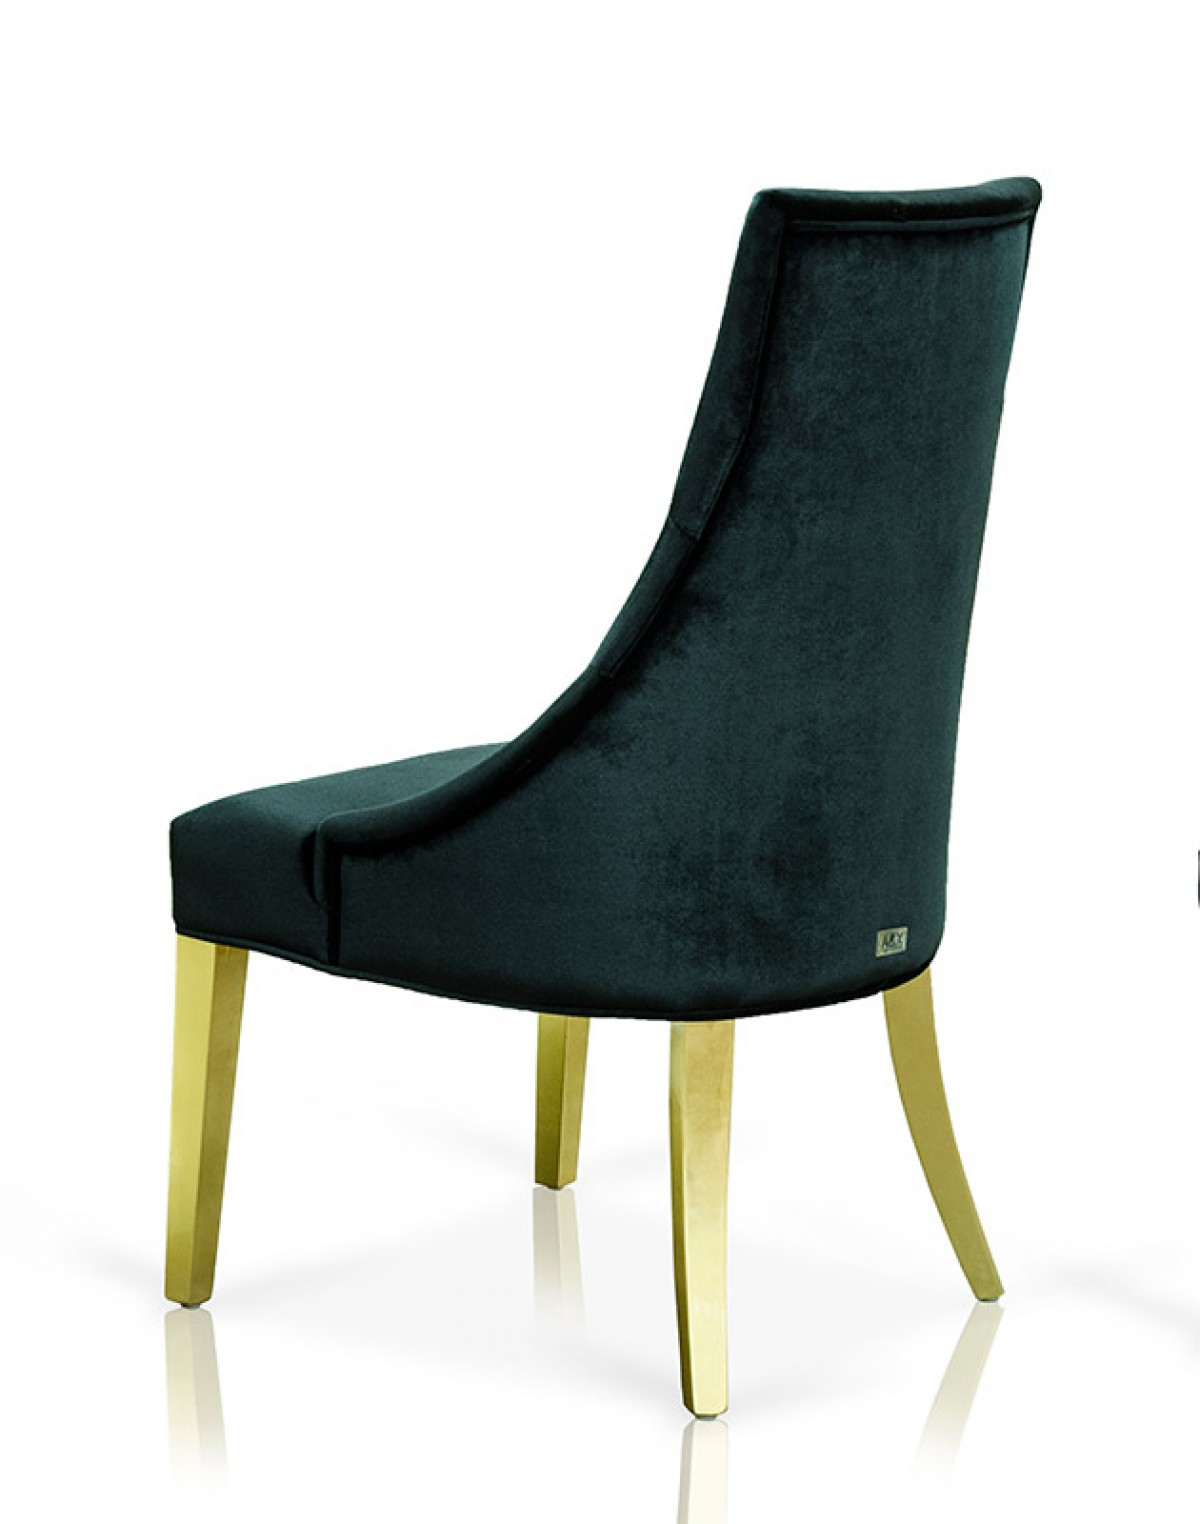 Go to cart page Continue : image3574 from vigfurniture.com size 1200 x 1524 jpeg 117kB